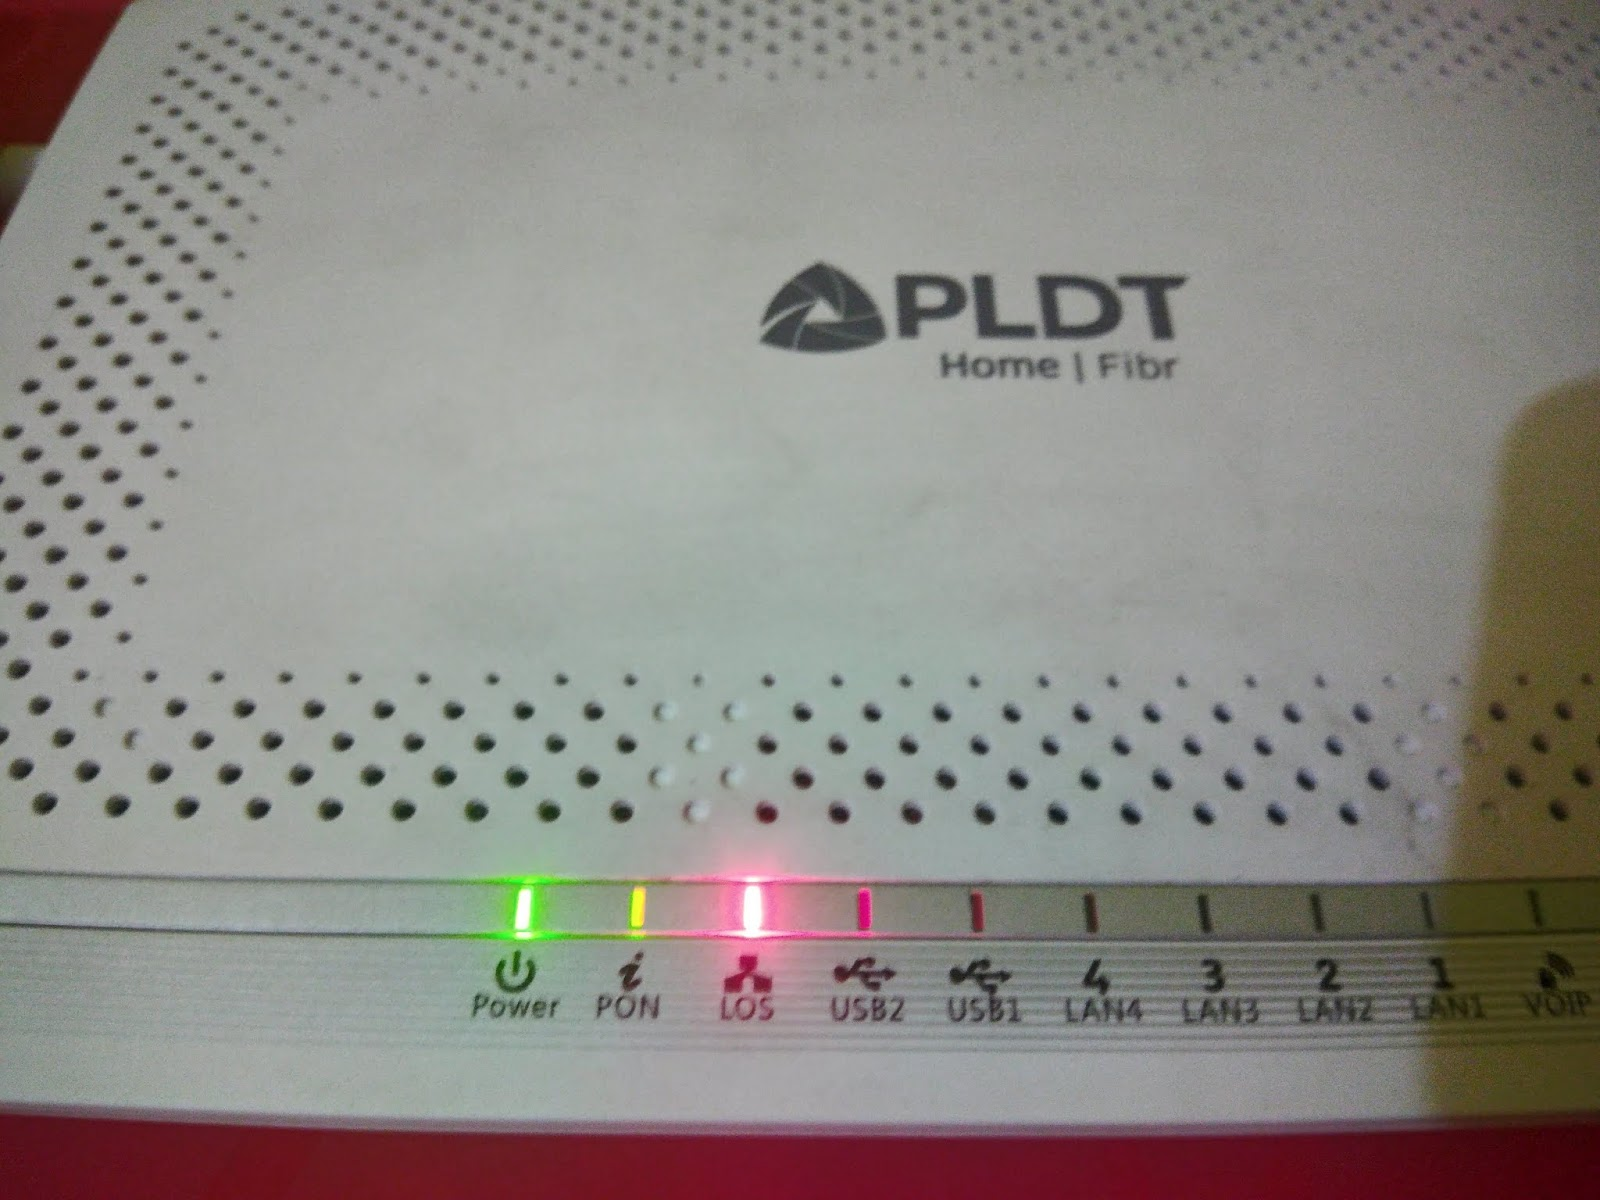 Outage report pldt